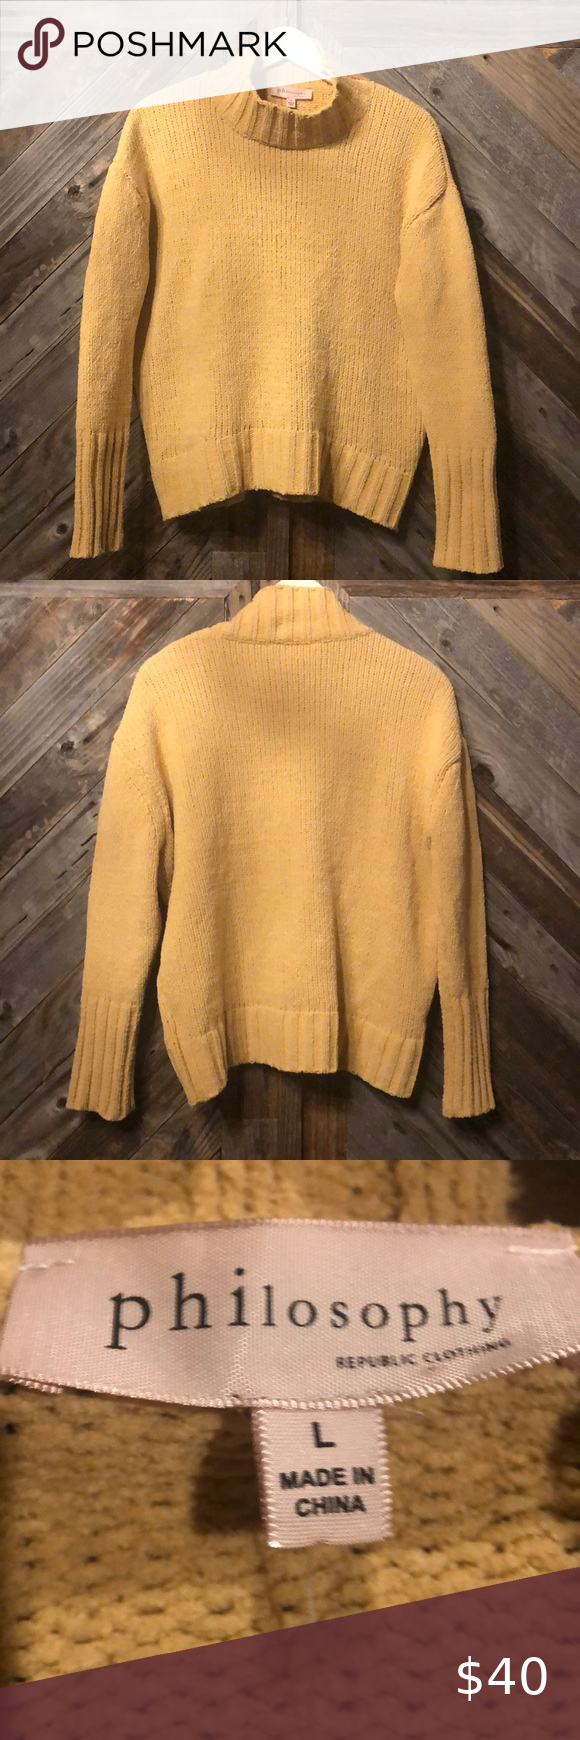 Philosophy Cowl Neck Sweater Cowl Neck Sweater Sweaters Clothes Design